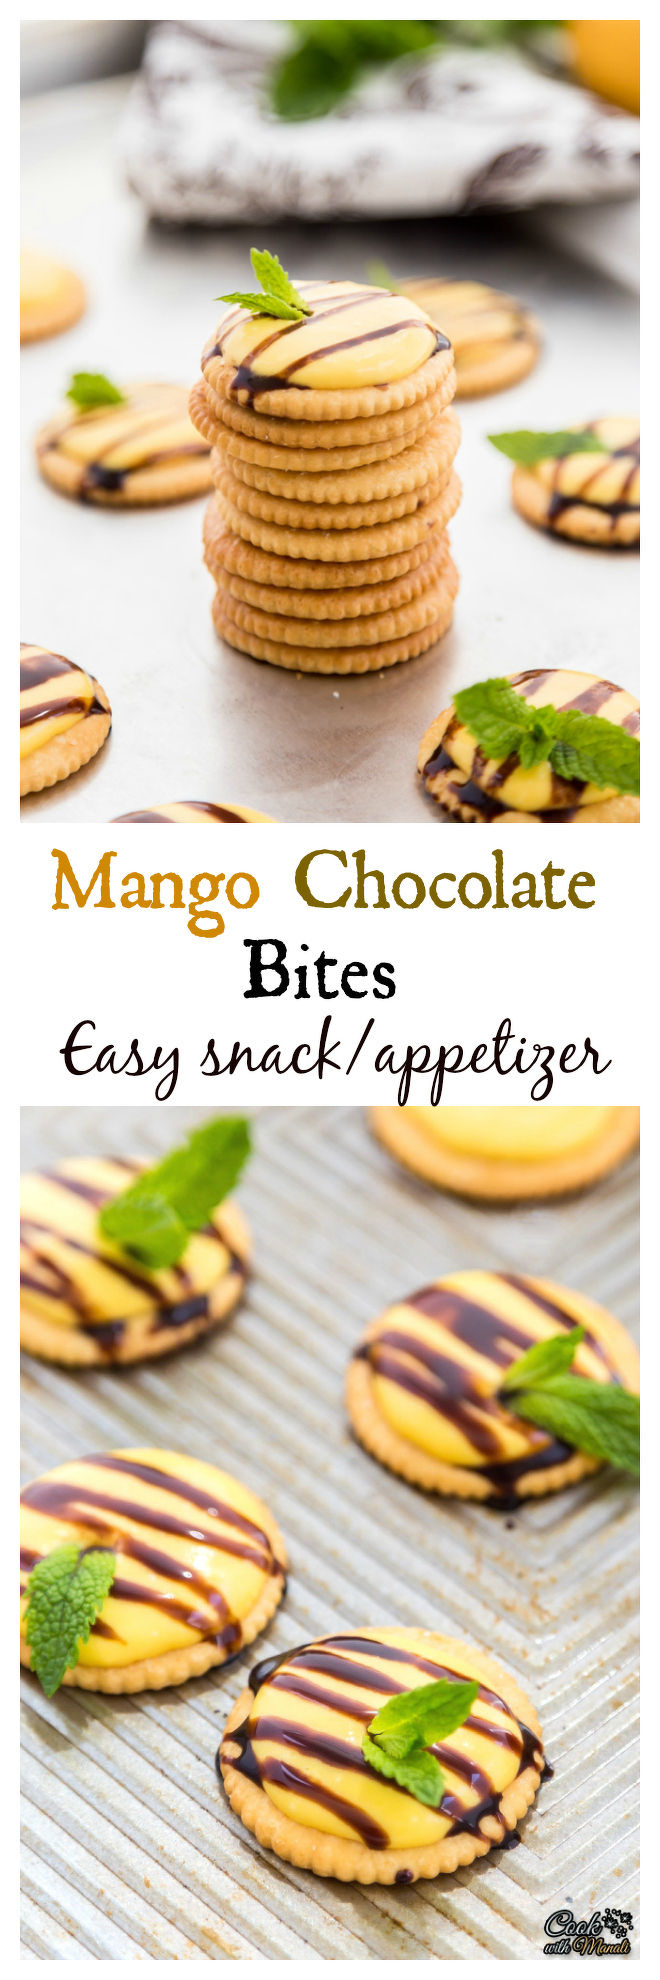 Mango Chocolate Bites Collage-nocwm